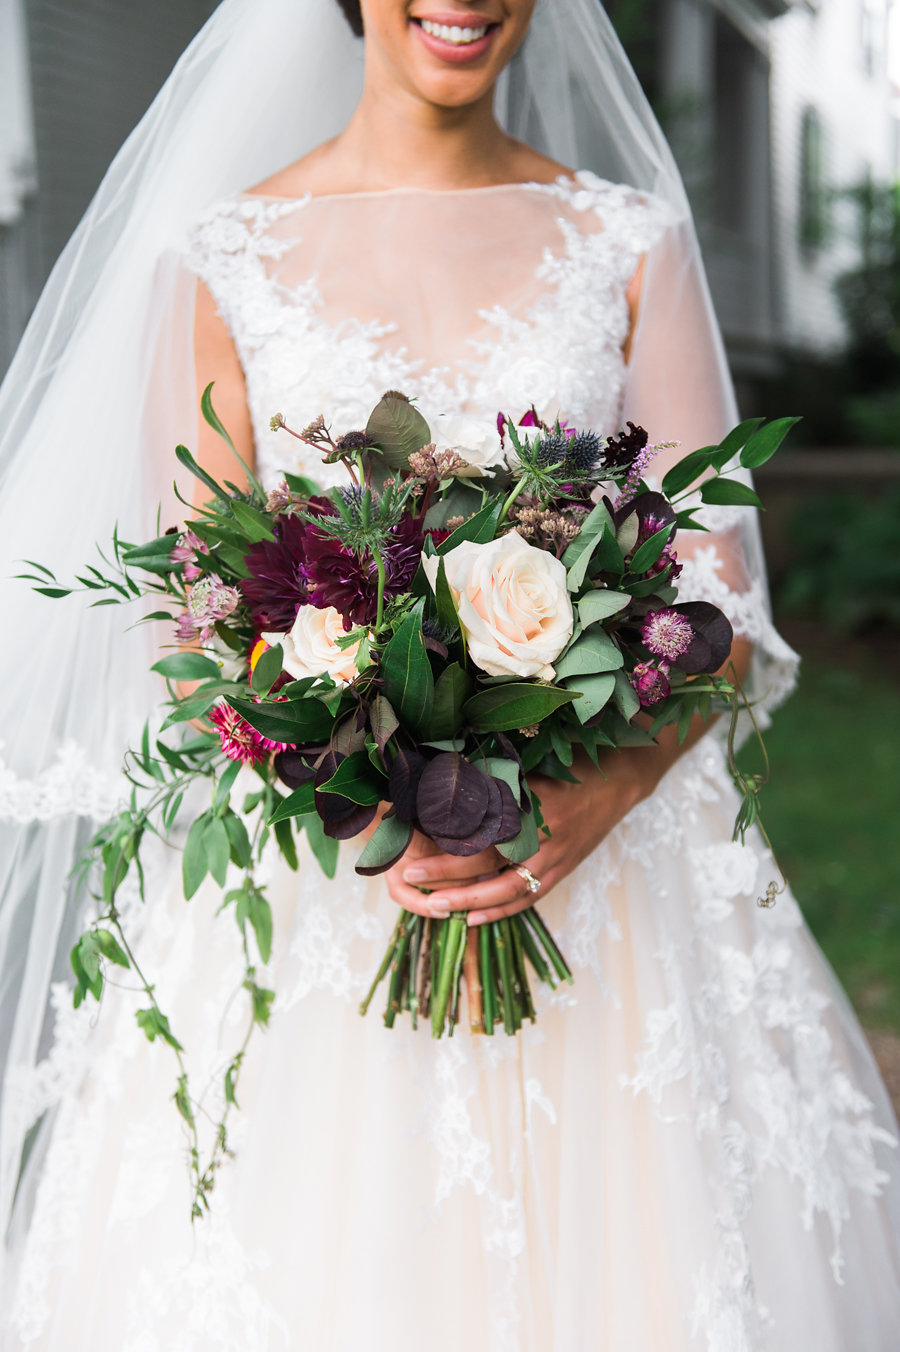 Deep Magenta and Gold New England Wedding Inspiration - photo by Catherine Threlkeld Photography http://ruffledblog.com/deep-magenta-and-gold-new-england-wedding-inspiration